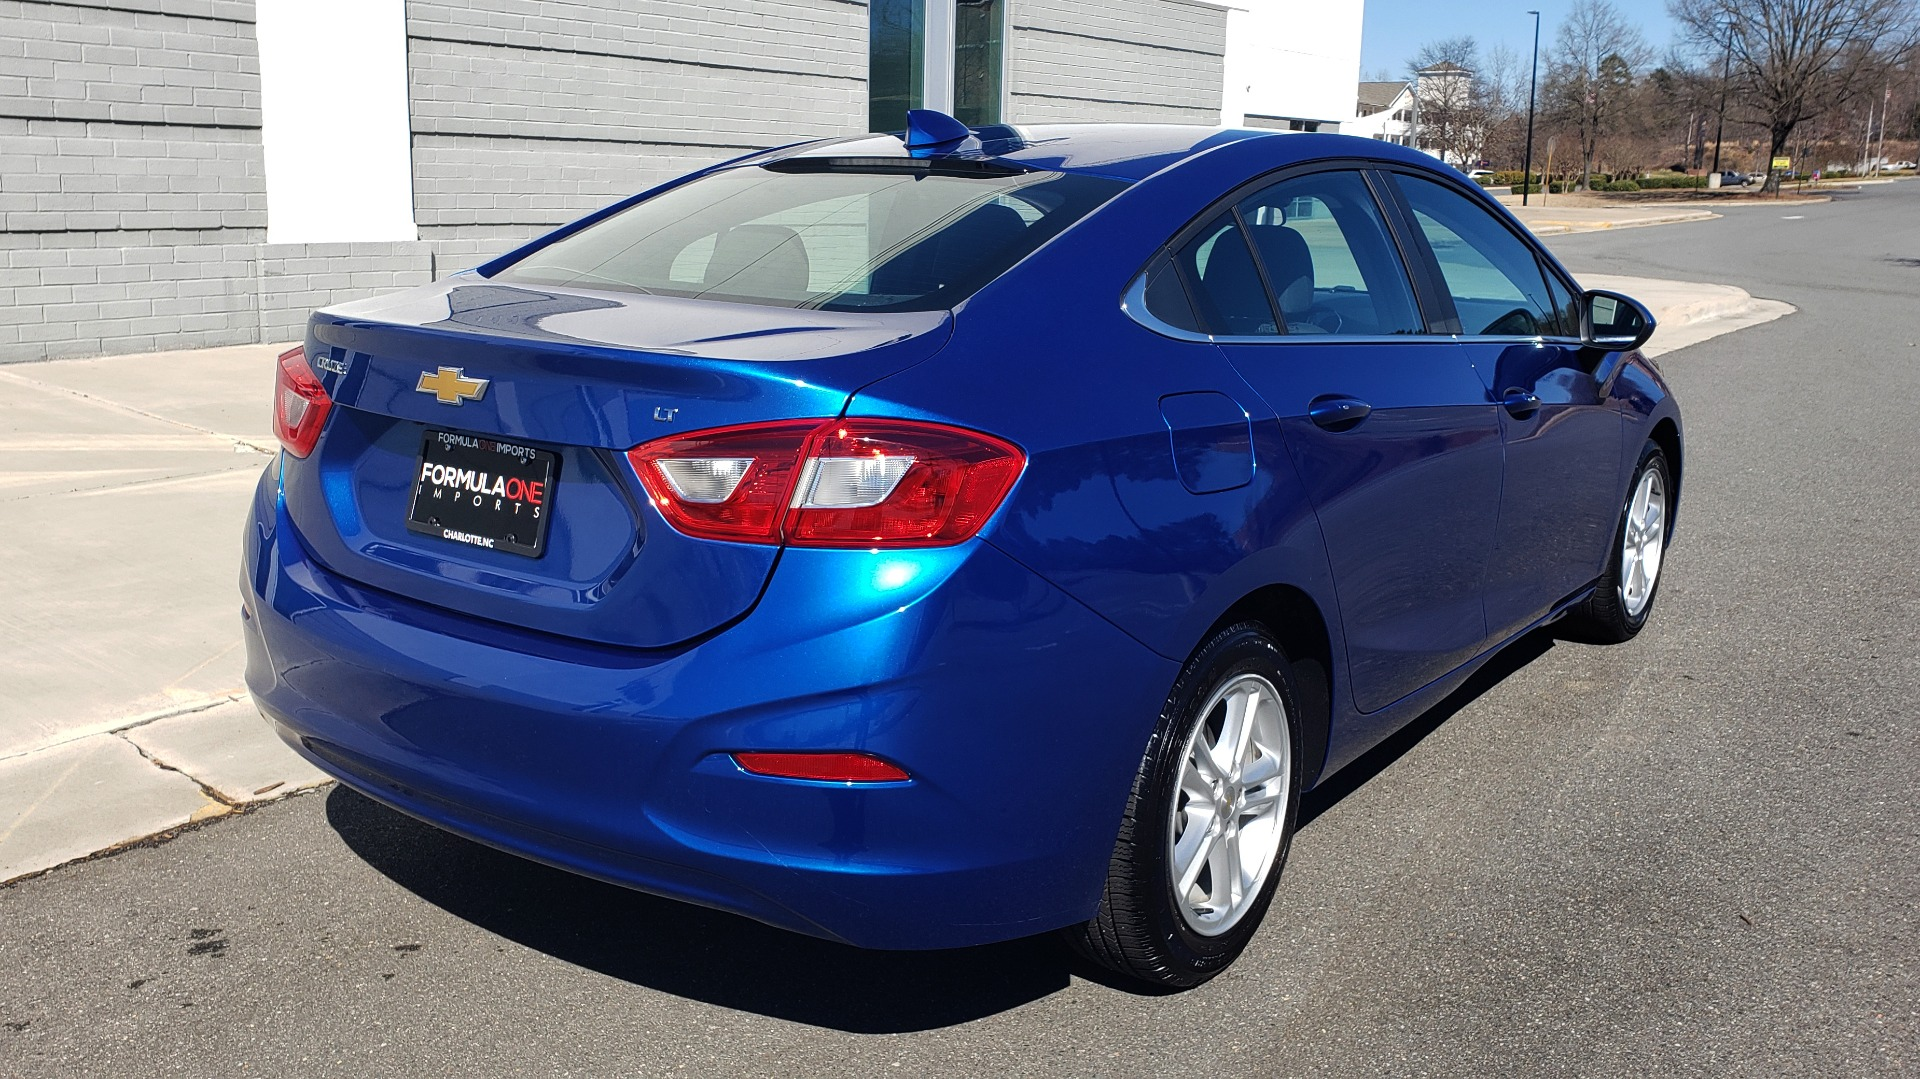 Used 2017 Chevrolet CRUZE LT 1.4L 1SD / 6-SPD AUTO / HTS STS / REMOTE START / REARVIEW for sale $11,495 at Formula Imports in Charlotte NC 28227 6